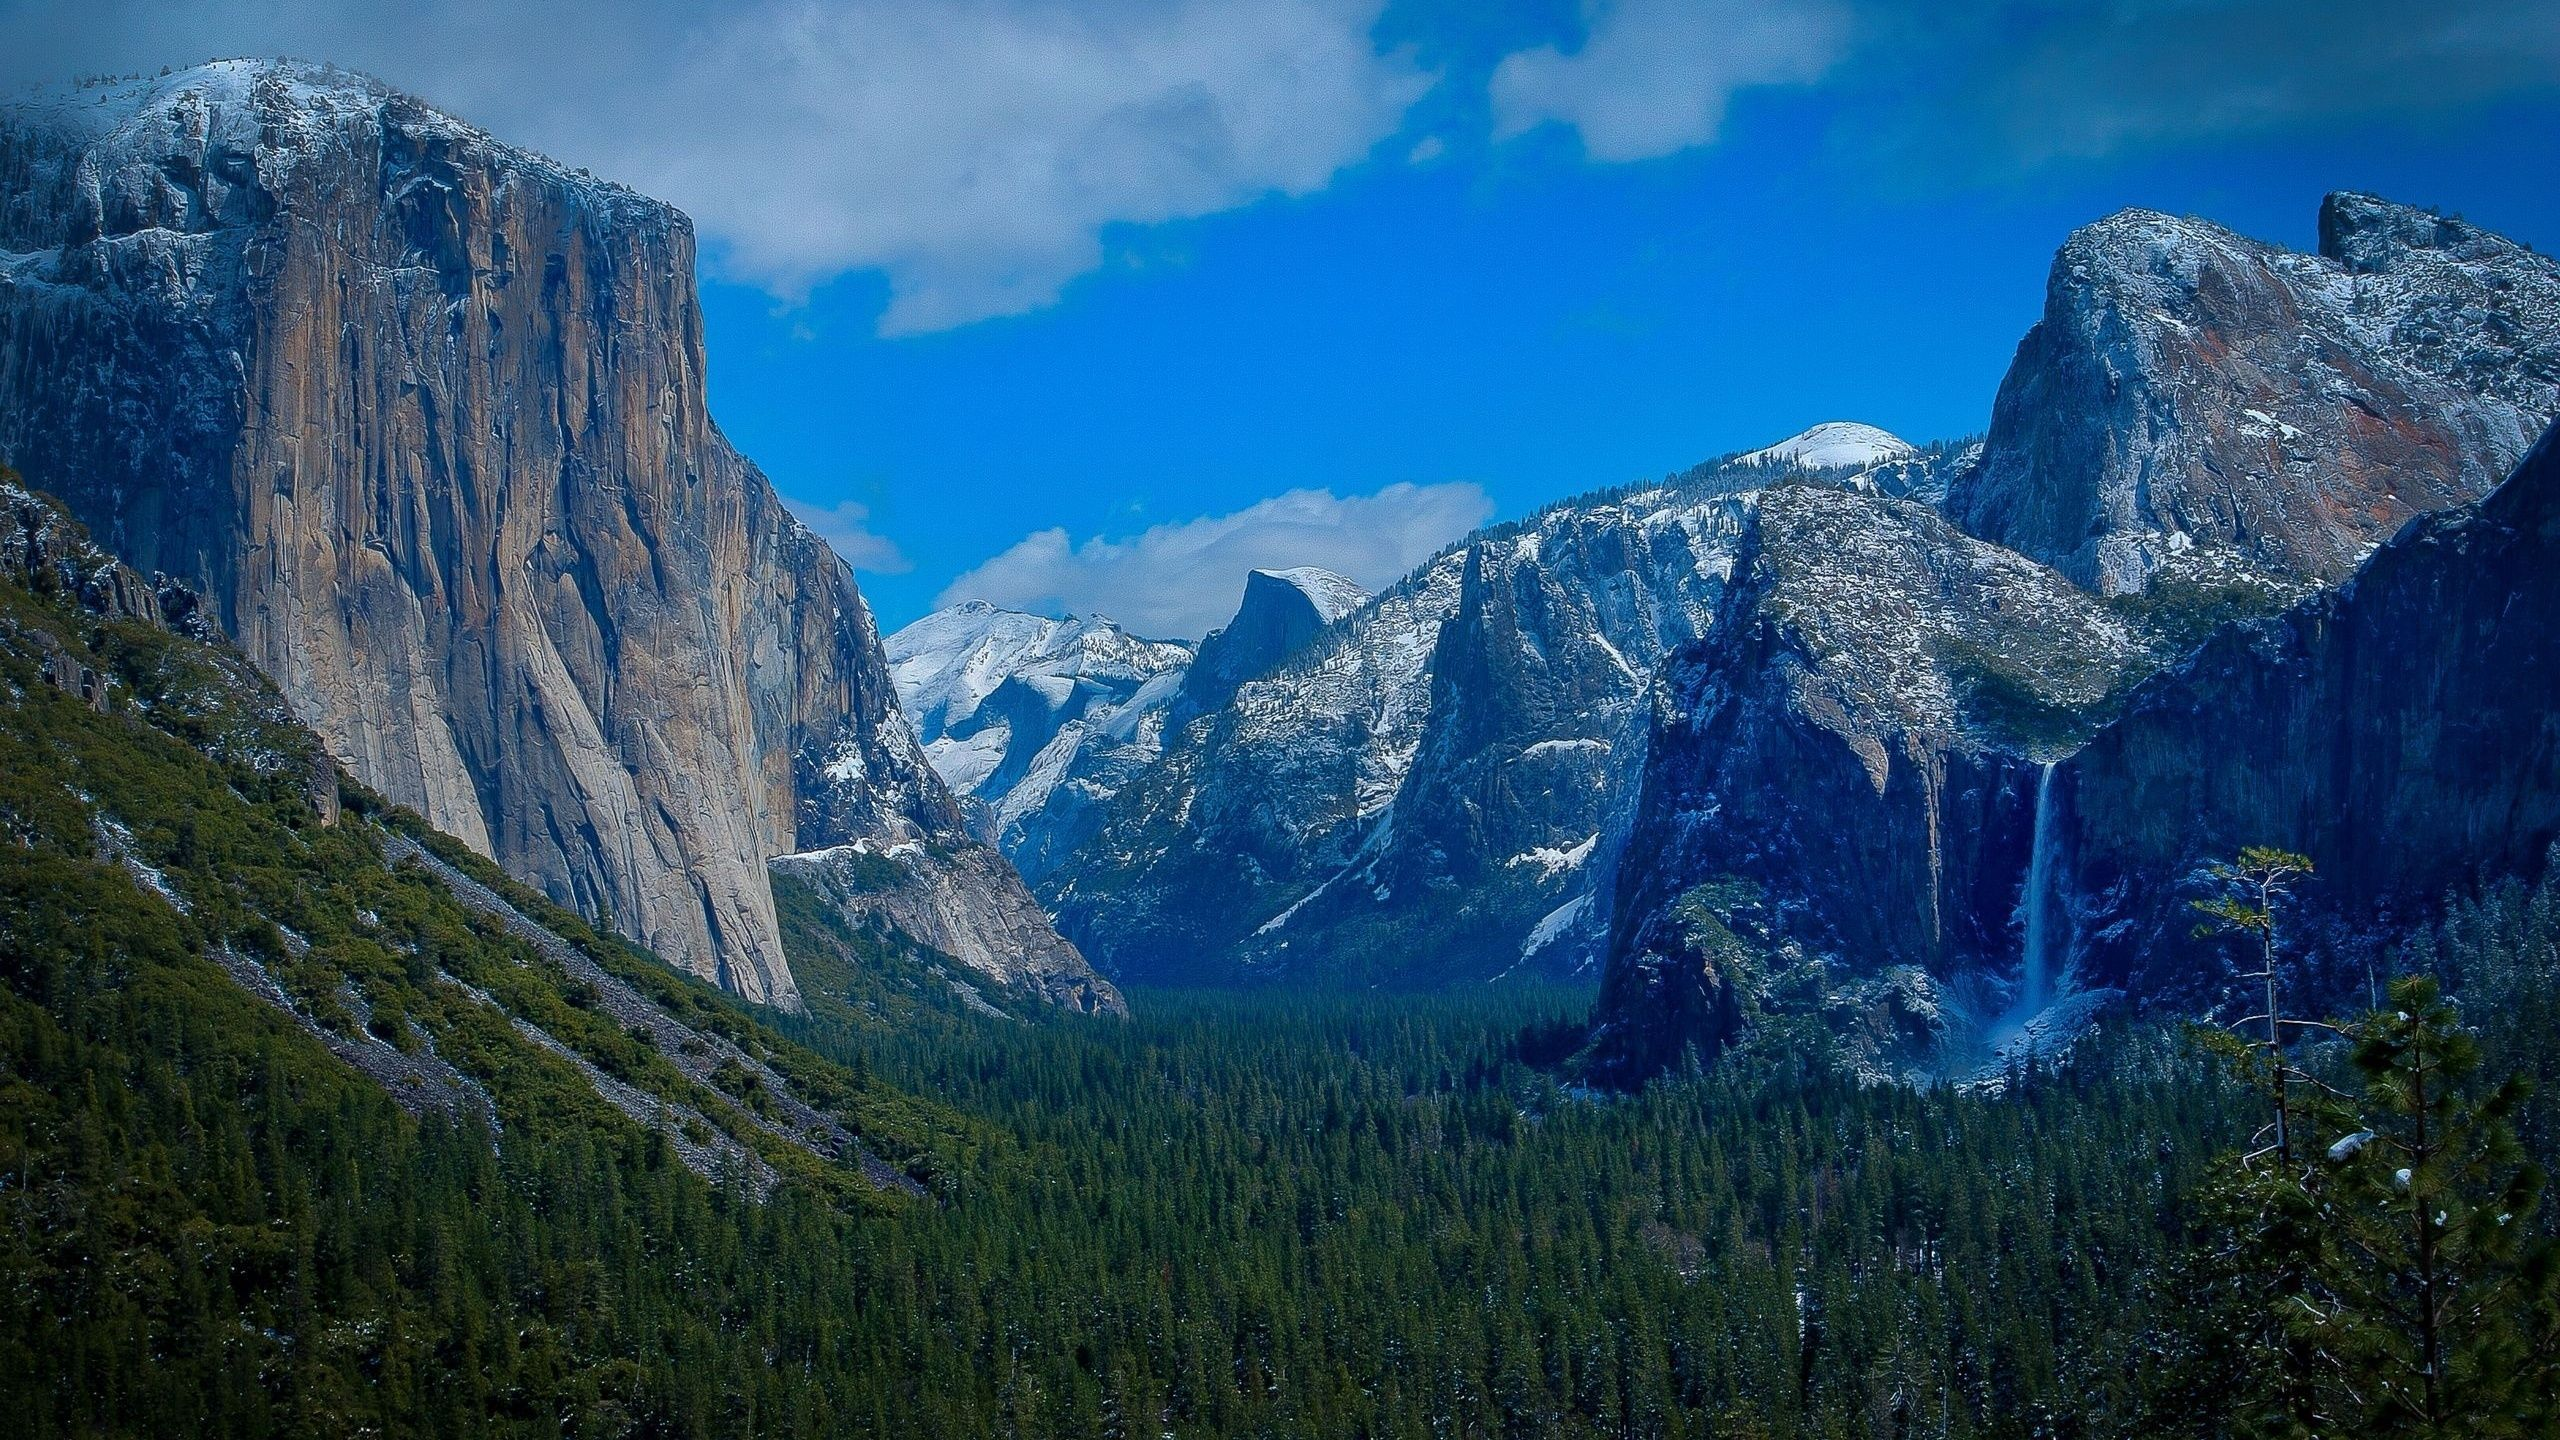 yosemite national park yosemite national park desktop wallpapers and backgrounds